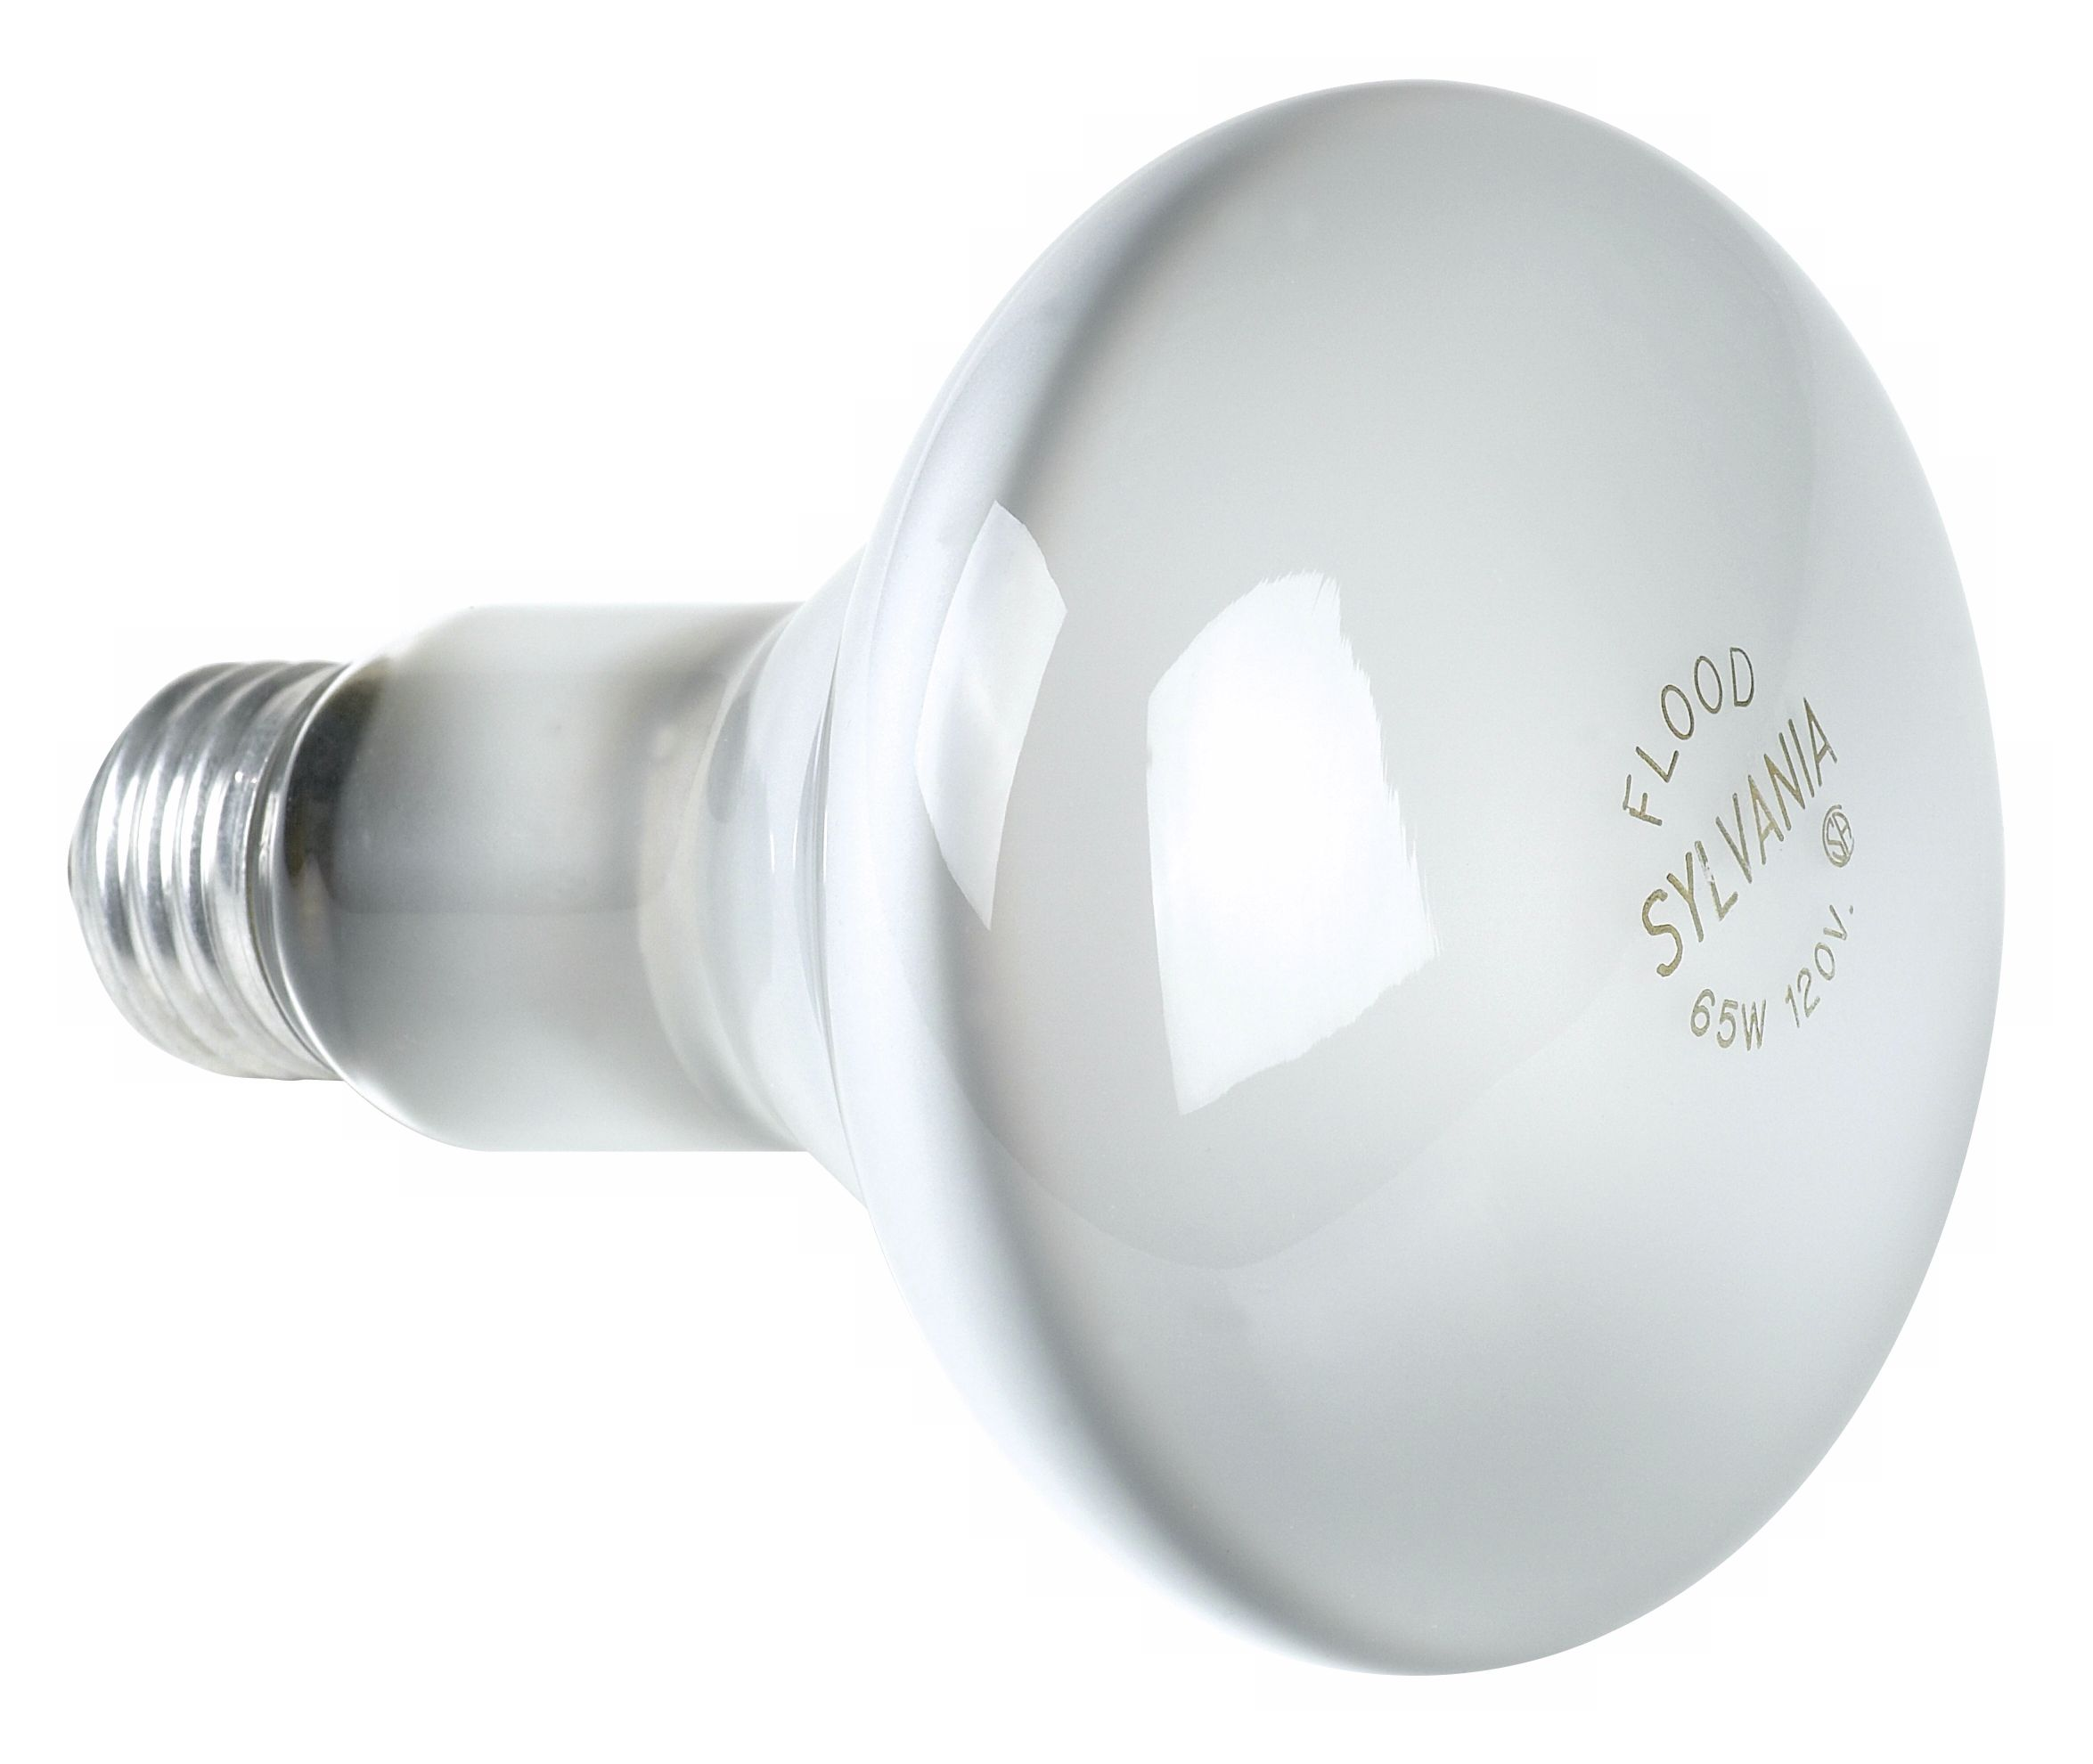 Awesome Sylvania 65 Watt BR 30 Flood Light Bulb Home Design Ideas